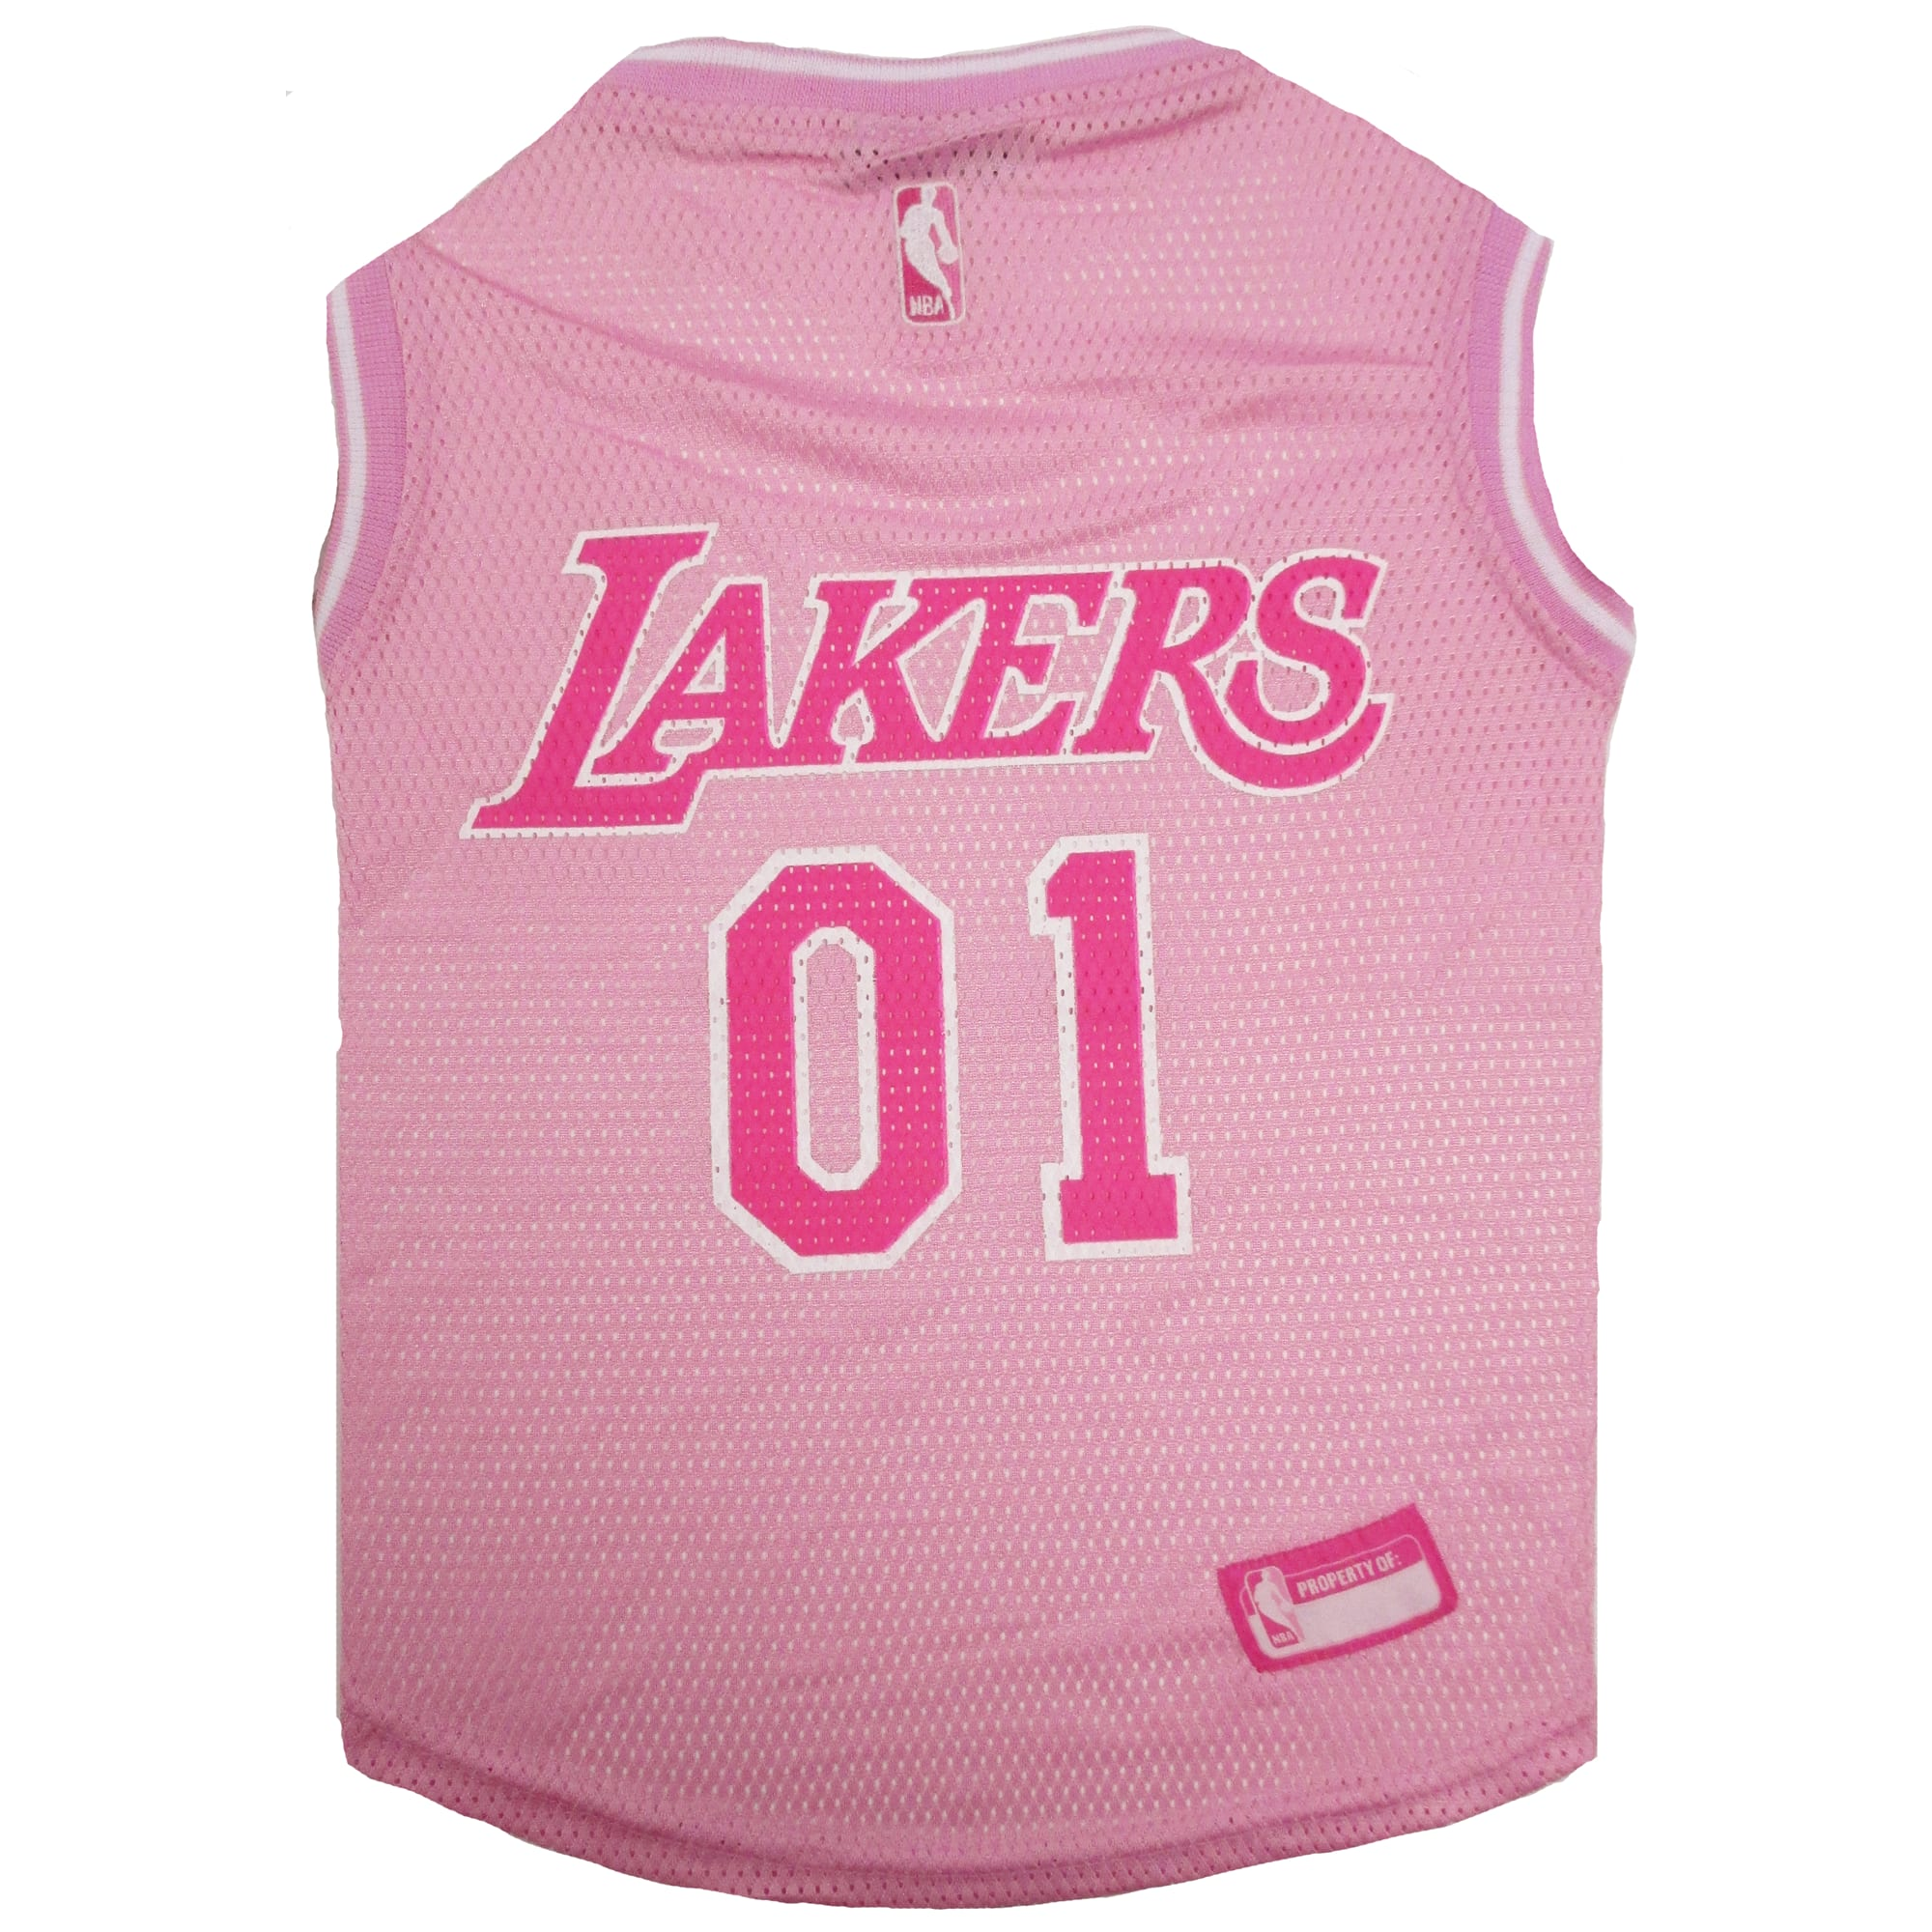 Pets First Los Angeles Lakers NBA Pink Jersey for Dogs, X-Small